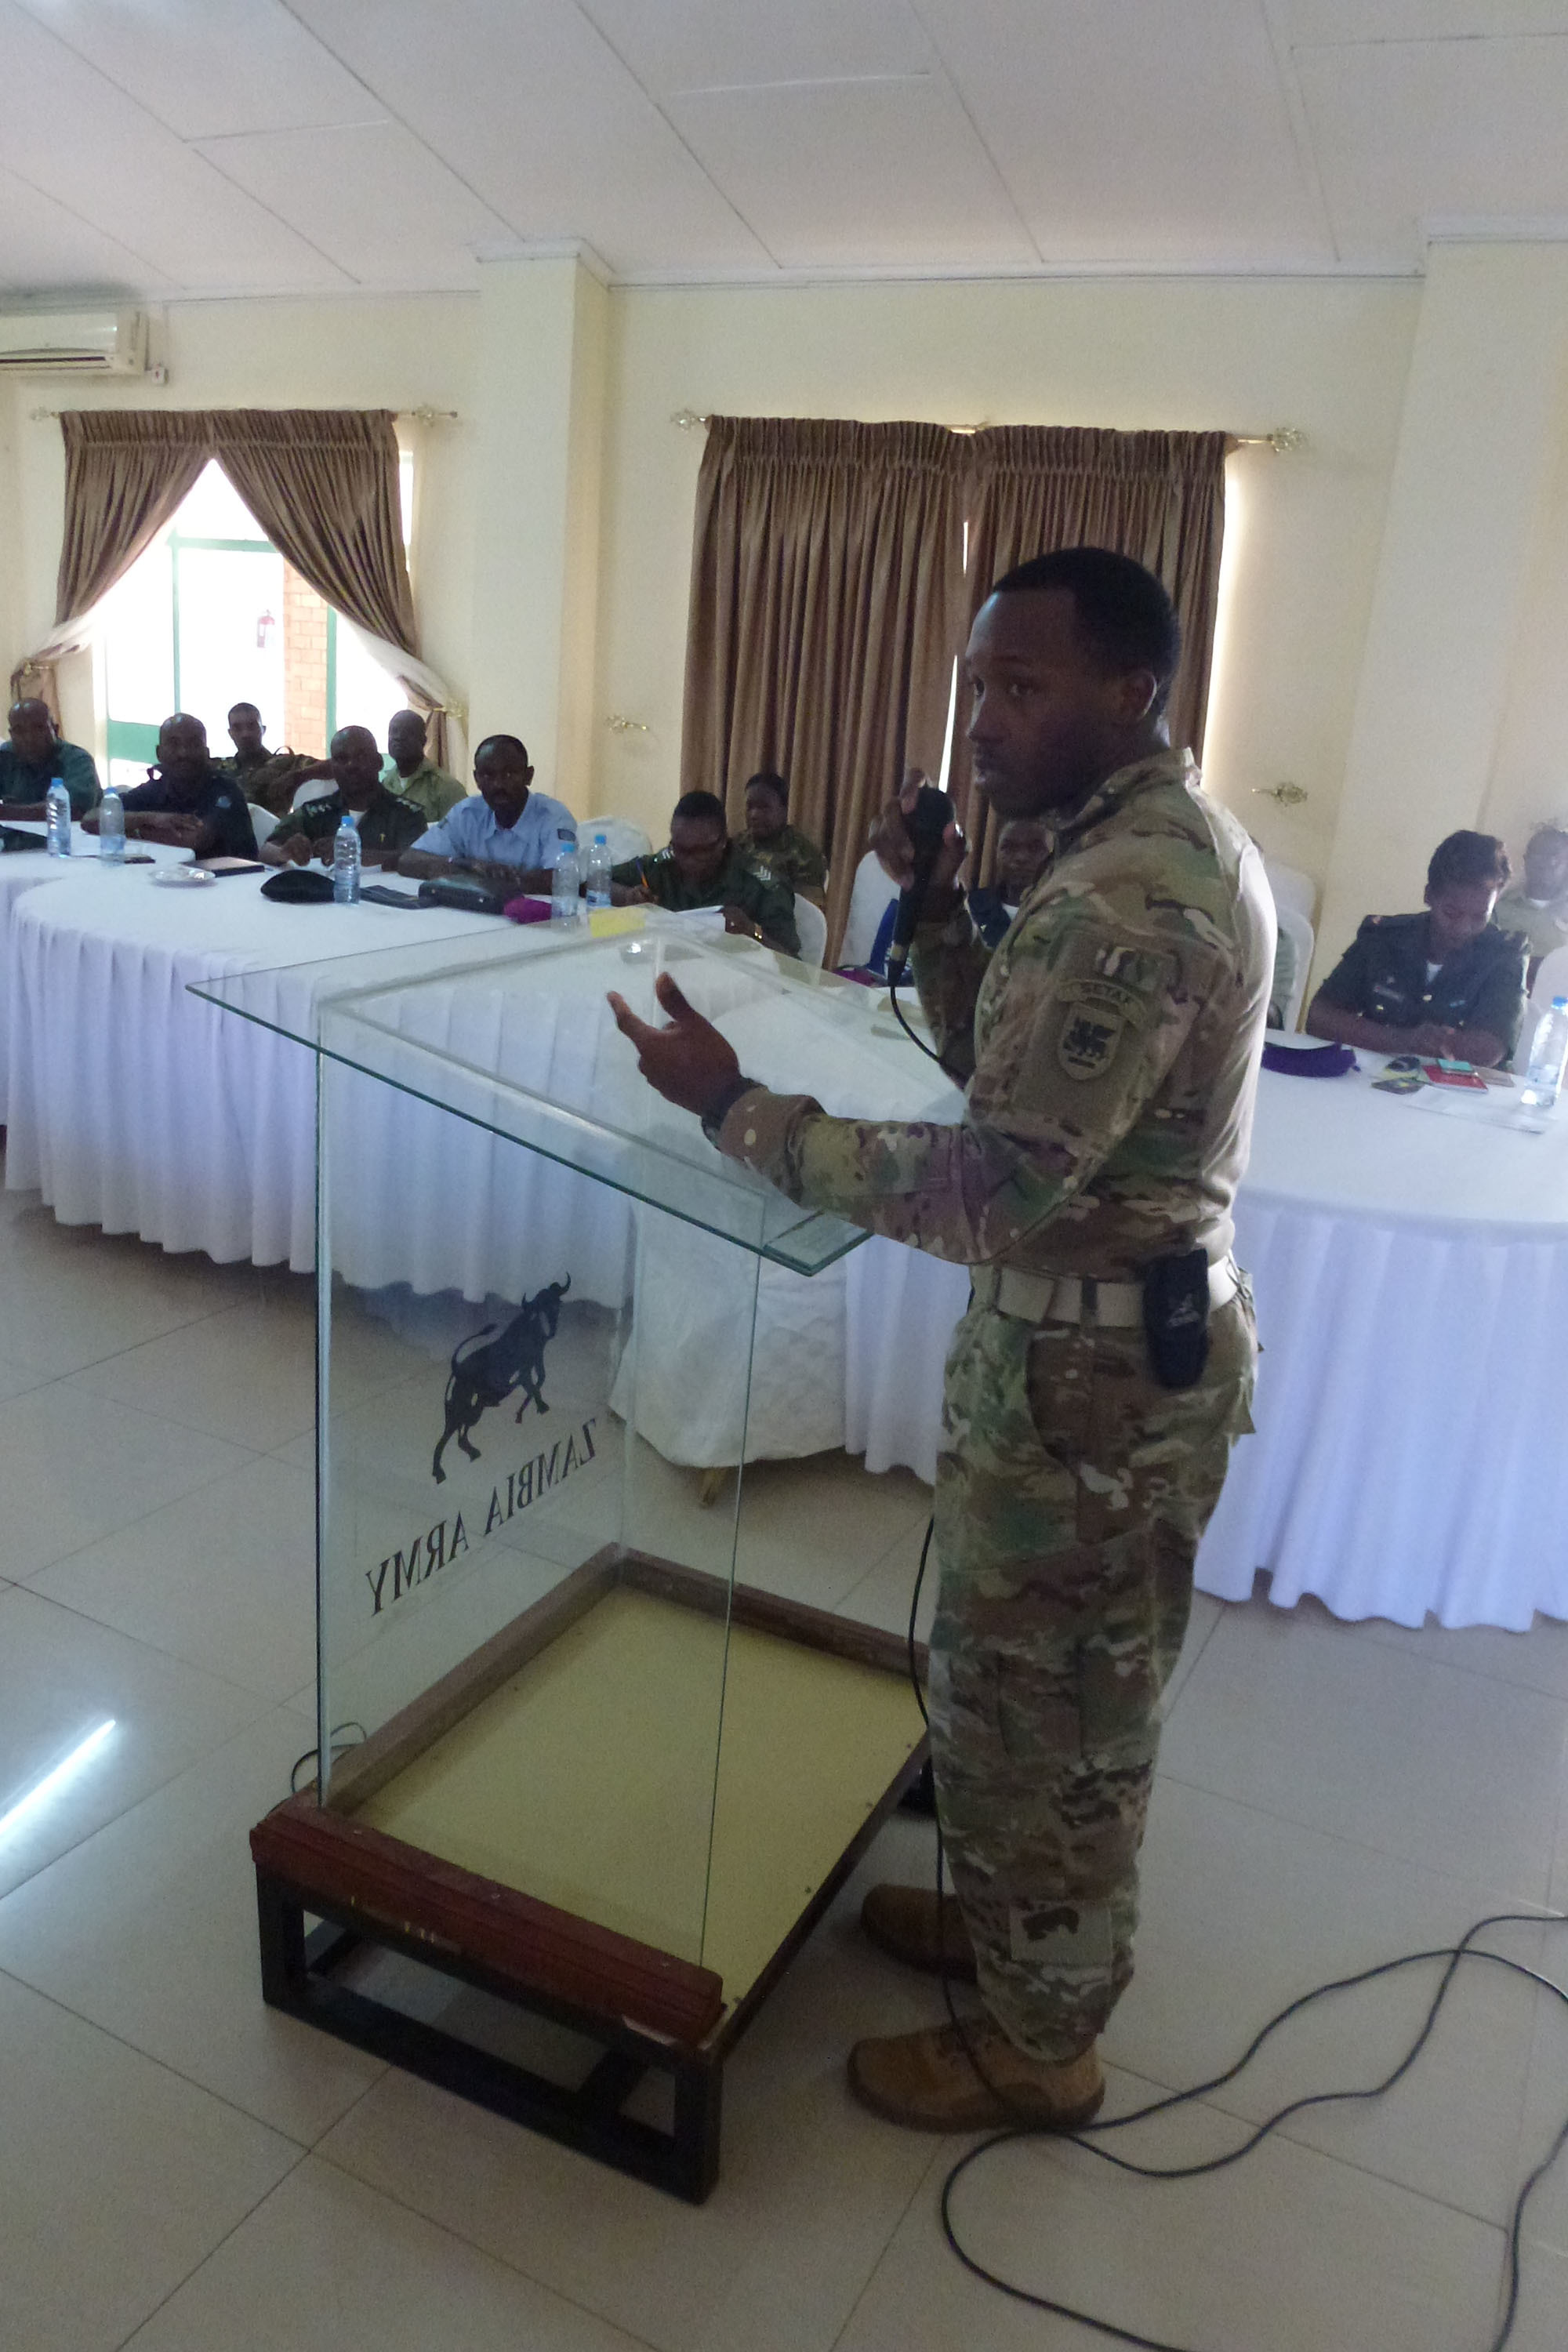 Sgt. 1st Class George L. Butler, the U.S. Army Africa senior religious affairs noncommissioned officer in charge, speaks during a seminar attended by USARAF and Zambian Defense Force chaplains in Lusaka, Zambia, Jan. 23-25, 2018. During the seminar, the chaplains discussed peacekeeping operations deployment cycle support and the emotional and spiritual stresses of combat on the African continent. (U.S. Army photo/Chaplain (Col.) David Lile)